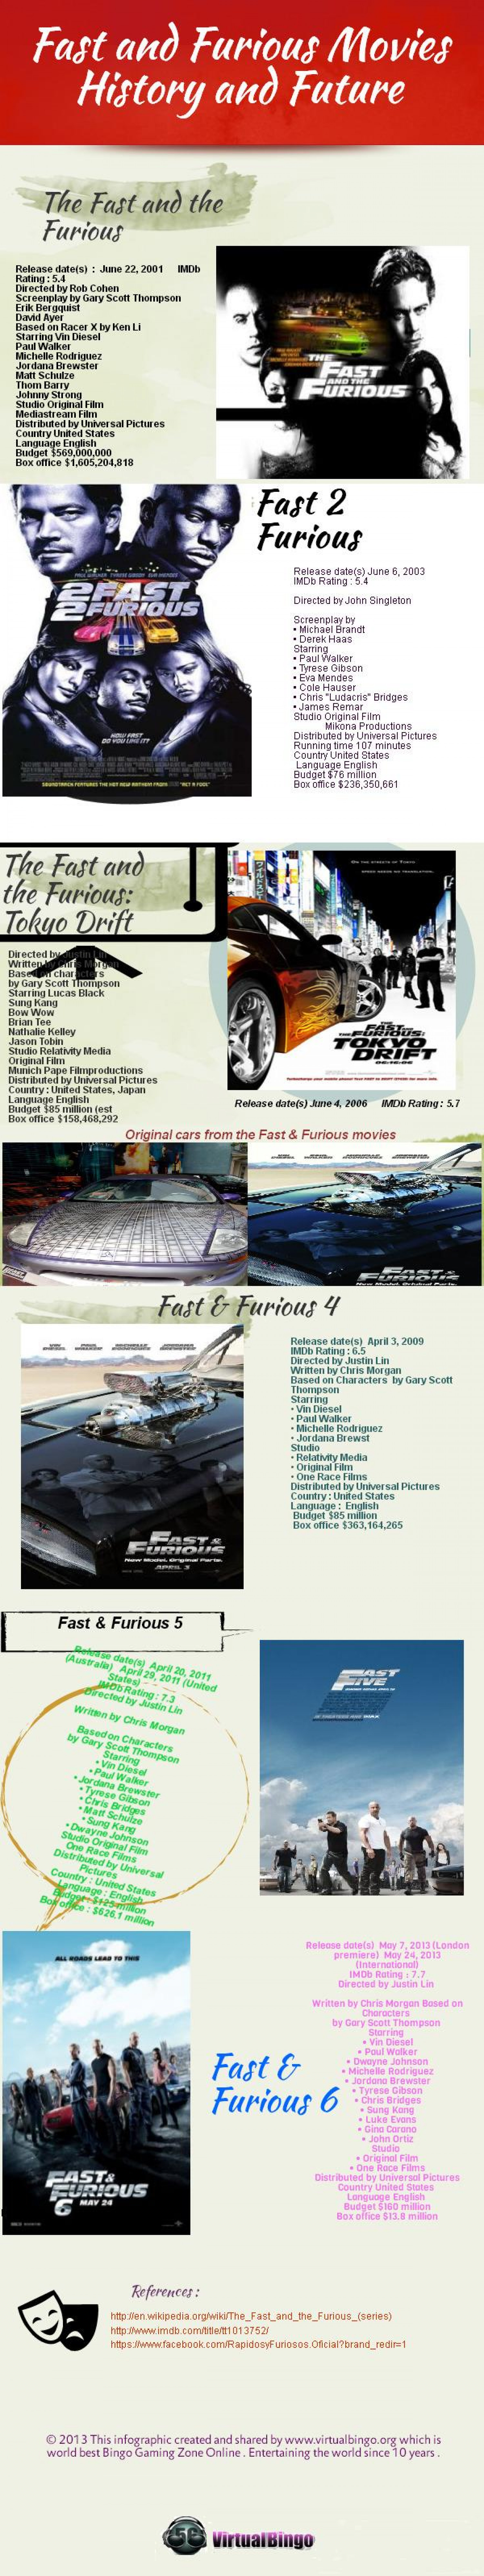 Fast and Furious Movies History and Future [Infographic] Infographic